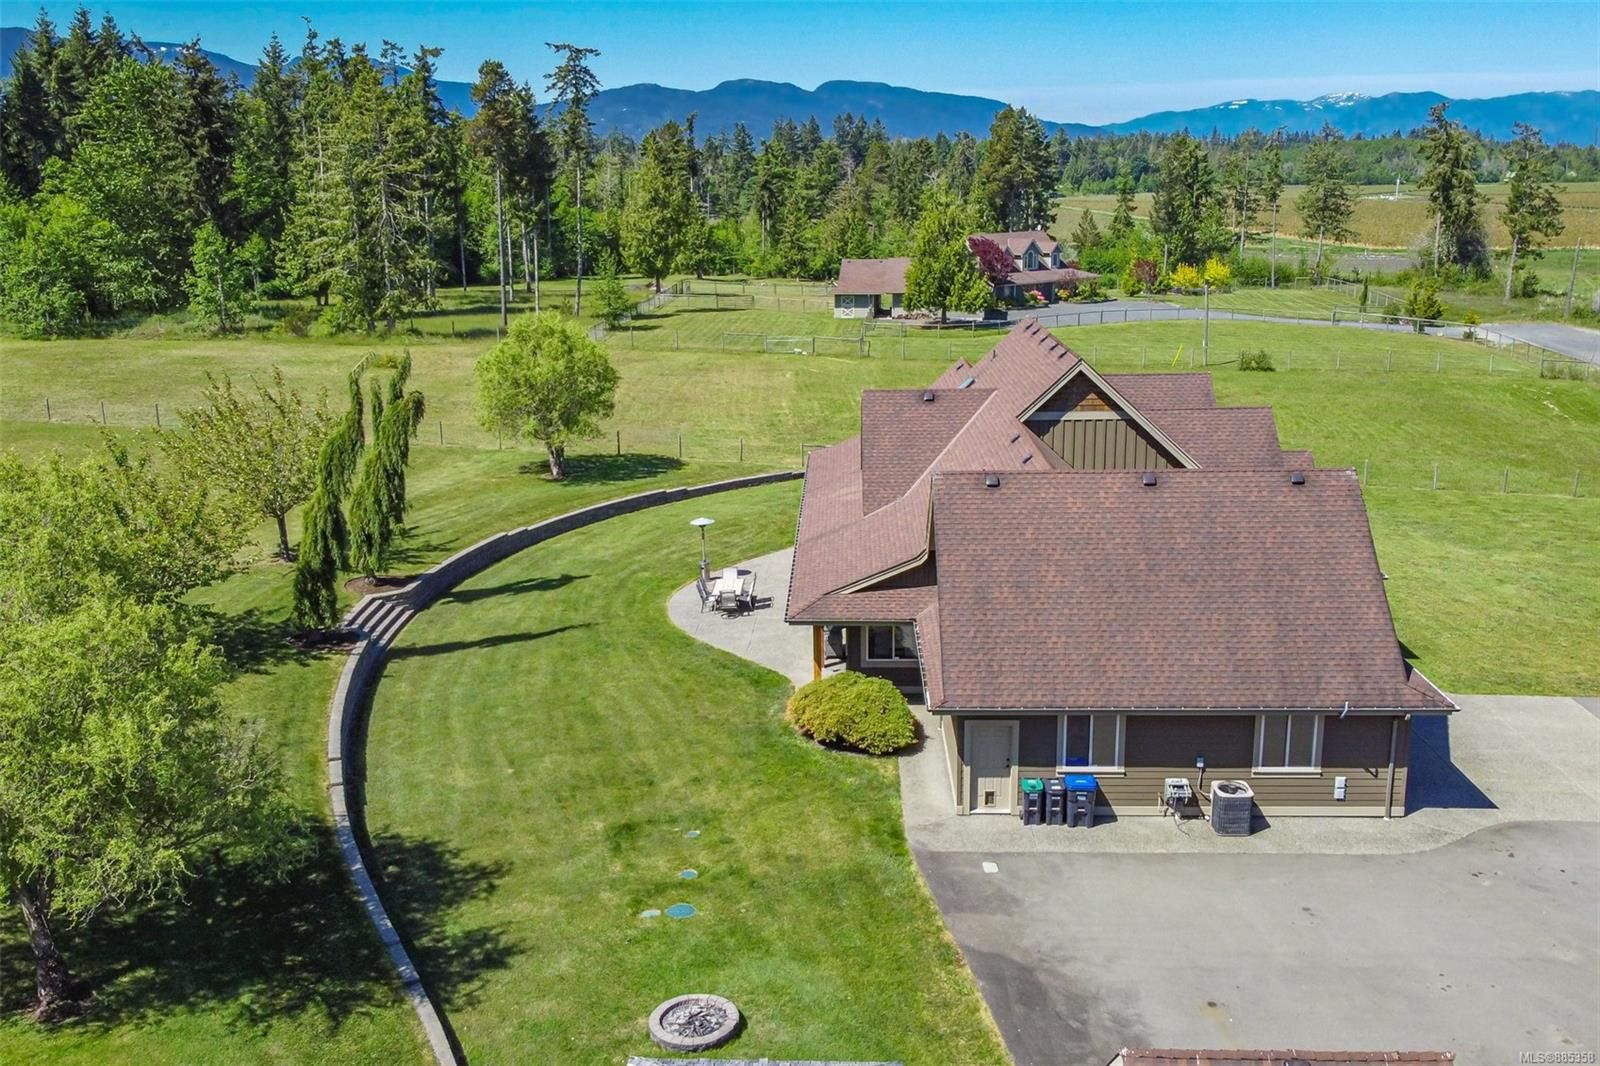 Photo 66: Photos: 2850 Peters Rd in : PQ Qualicum Beach House for sale (Parksville/Qualicum)  : MLS®# 885358